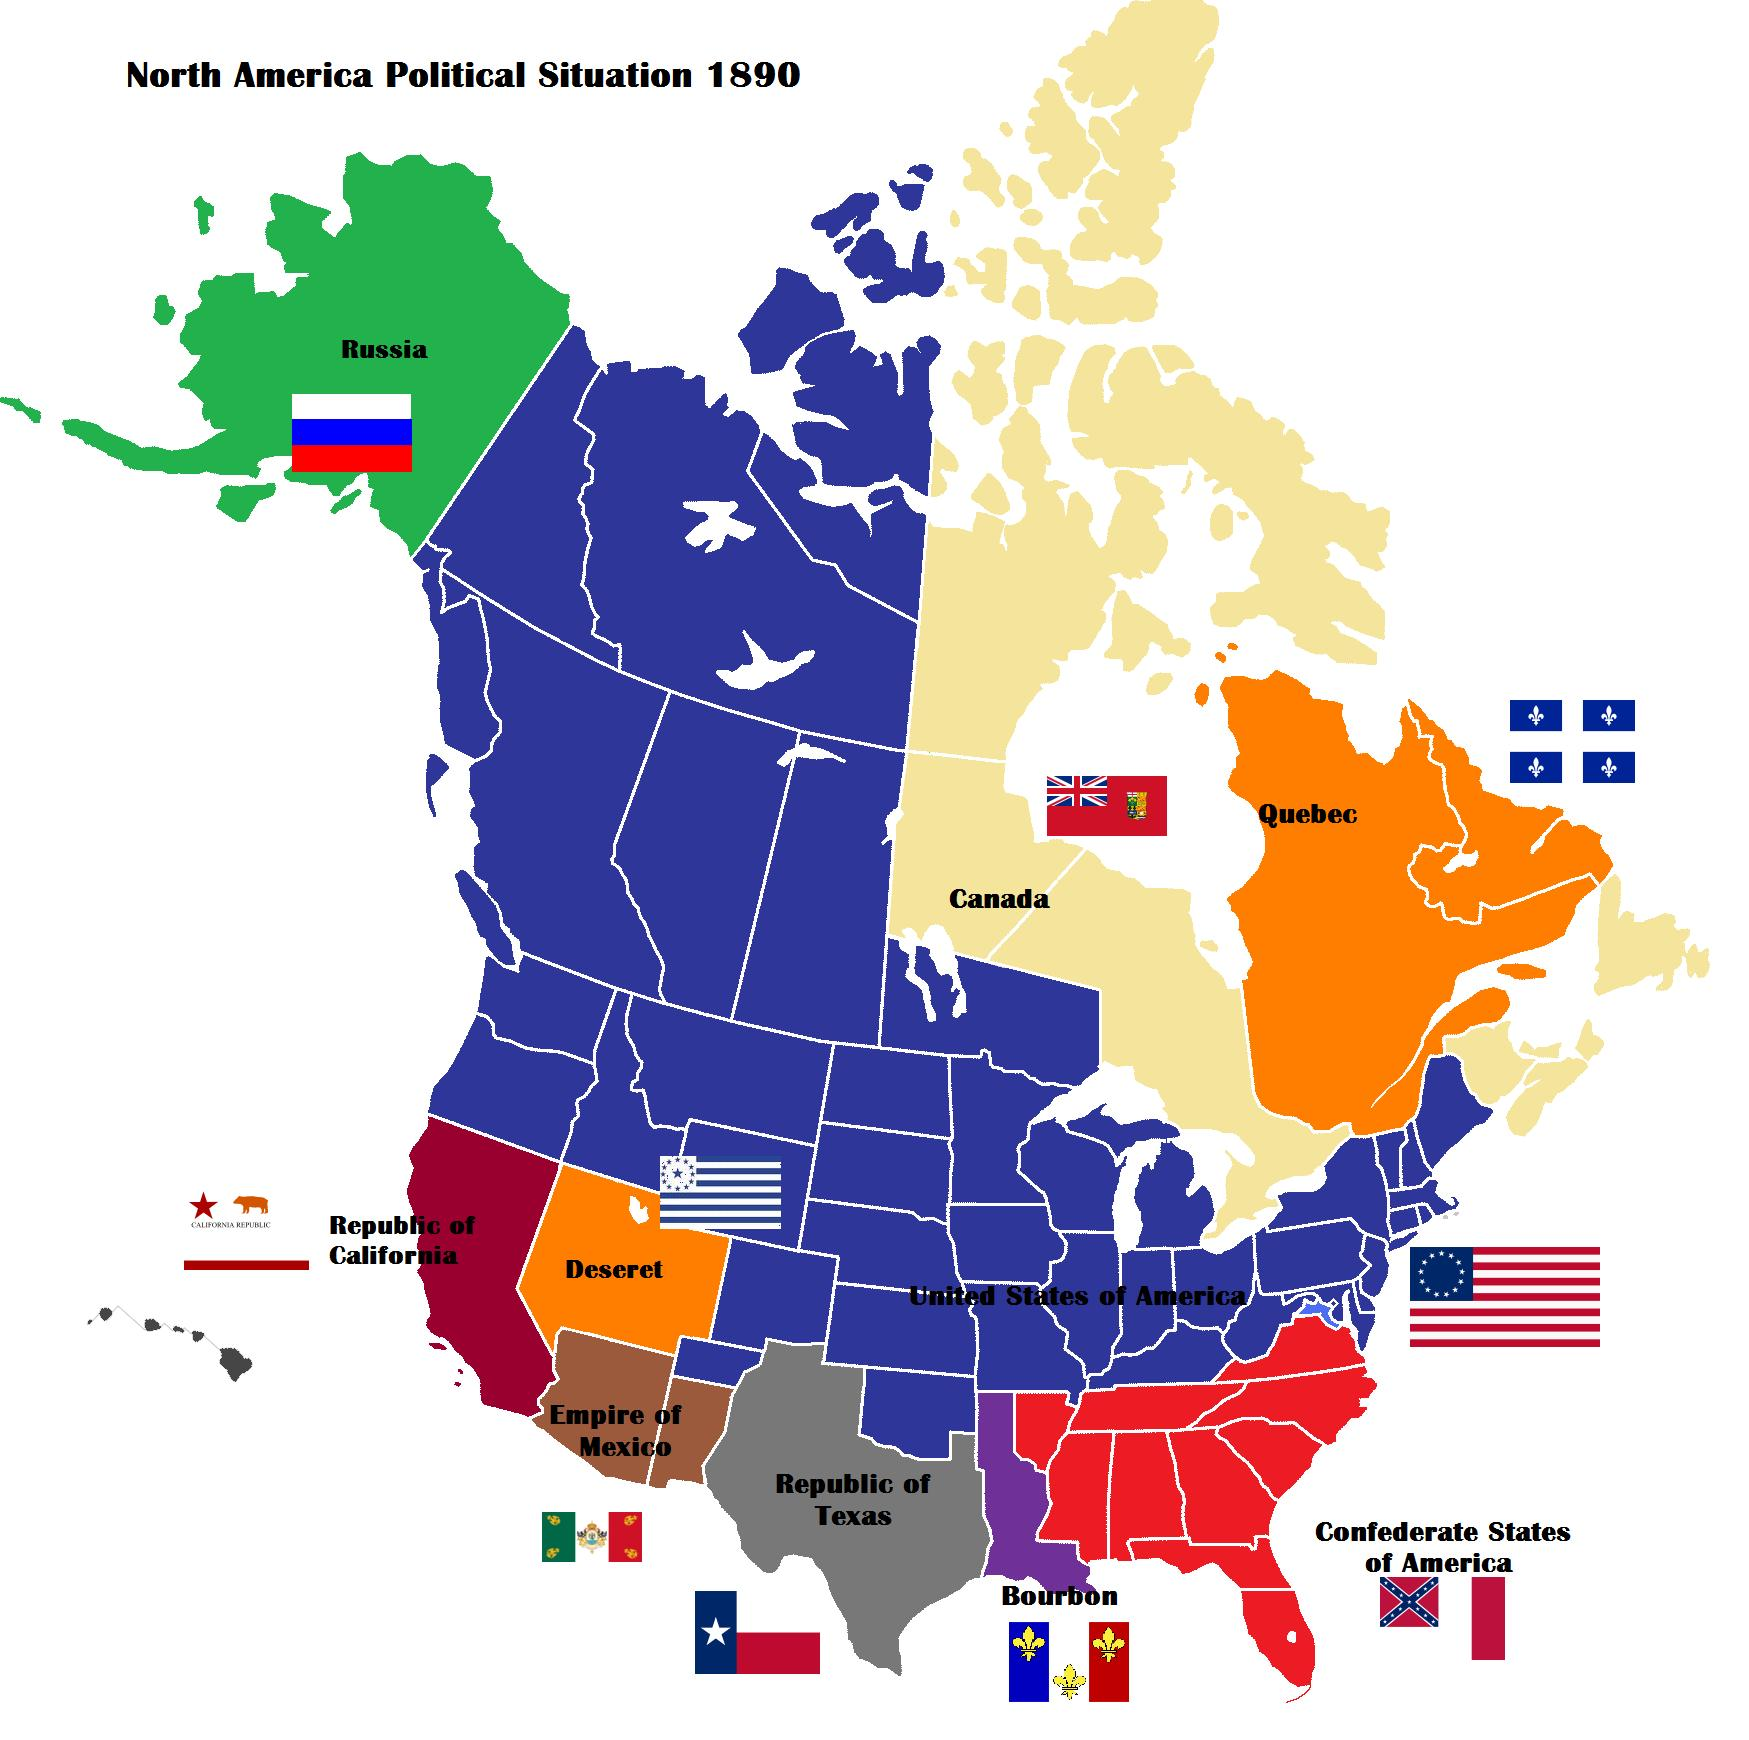 Worksheet. AltHist North America Map 1890 by DaemonofDecay on DeviantArt